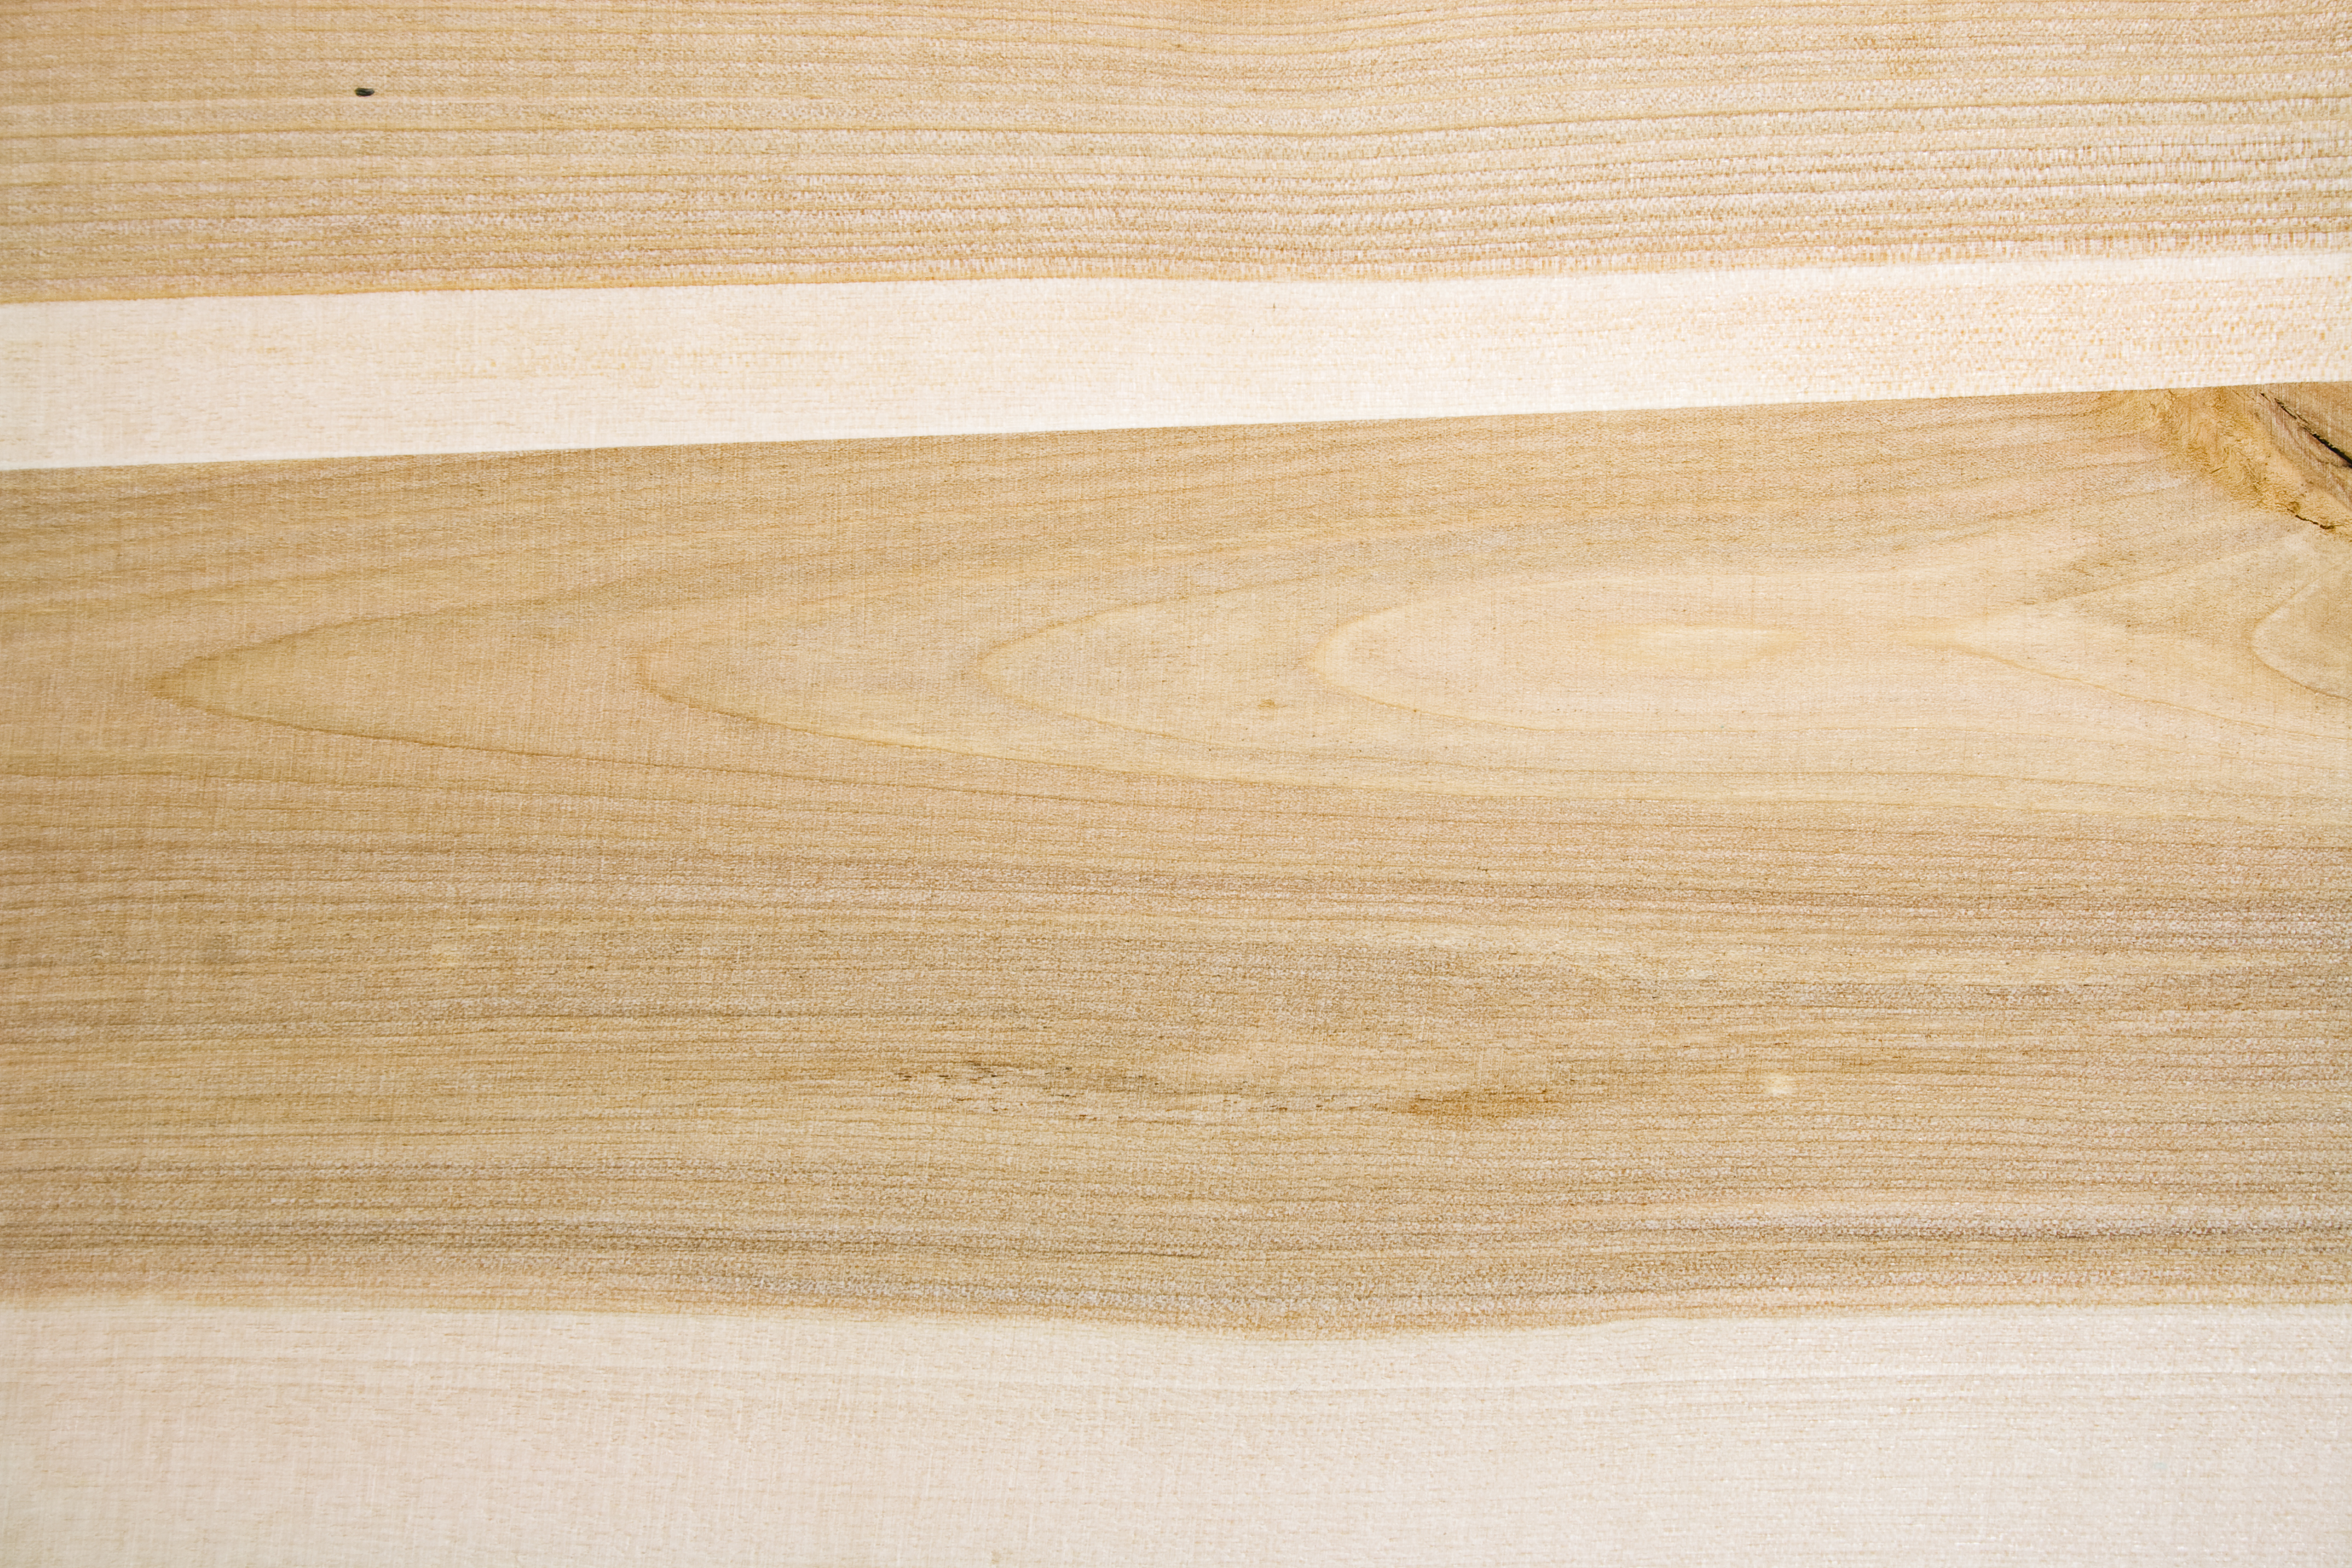 wood background, Backdrop, Rough, Wood, Textured, HQ Photo